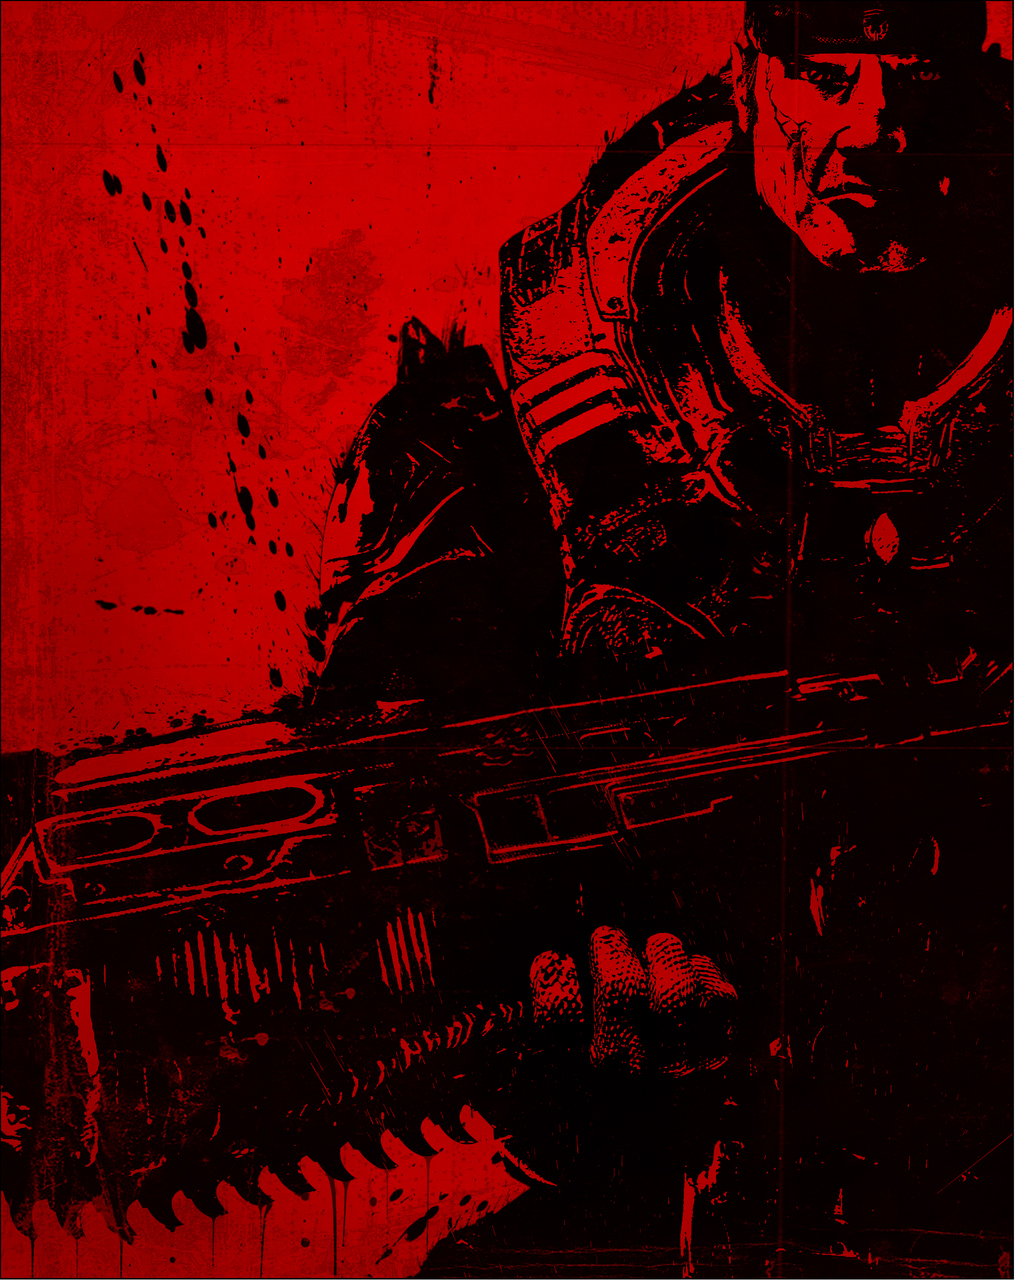 Gameart de Gears of War 2 para Xbox 360